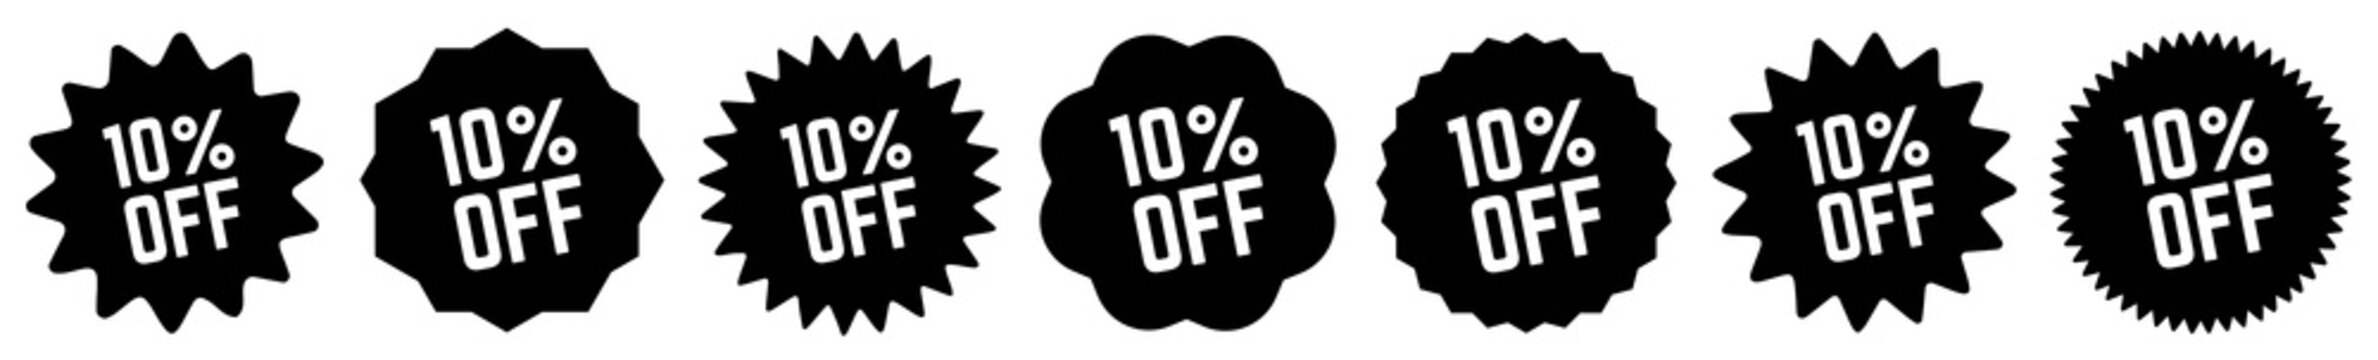 10 Percent OFF Discount Tag Black | Special Offer Icon | Sale Sticker | Deal Label | Variations